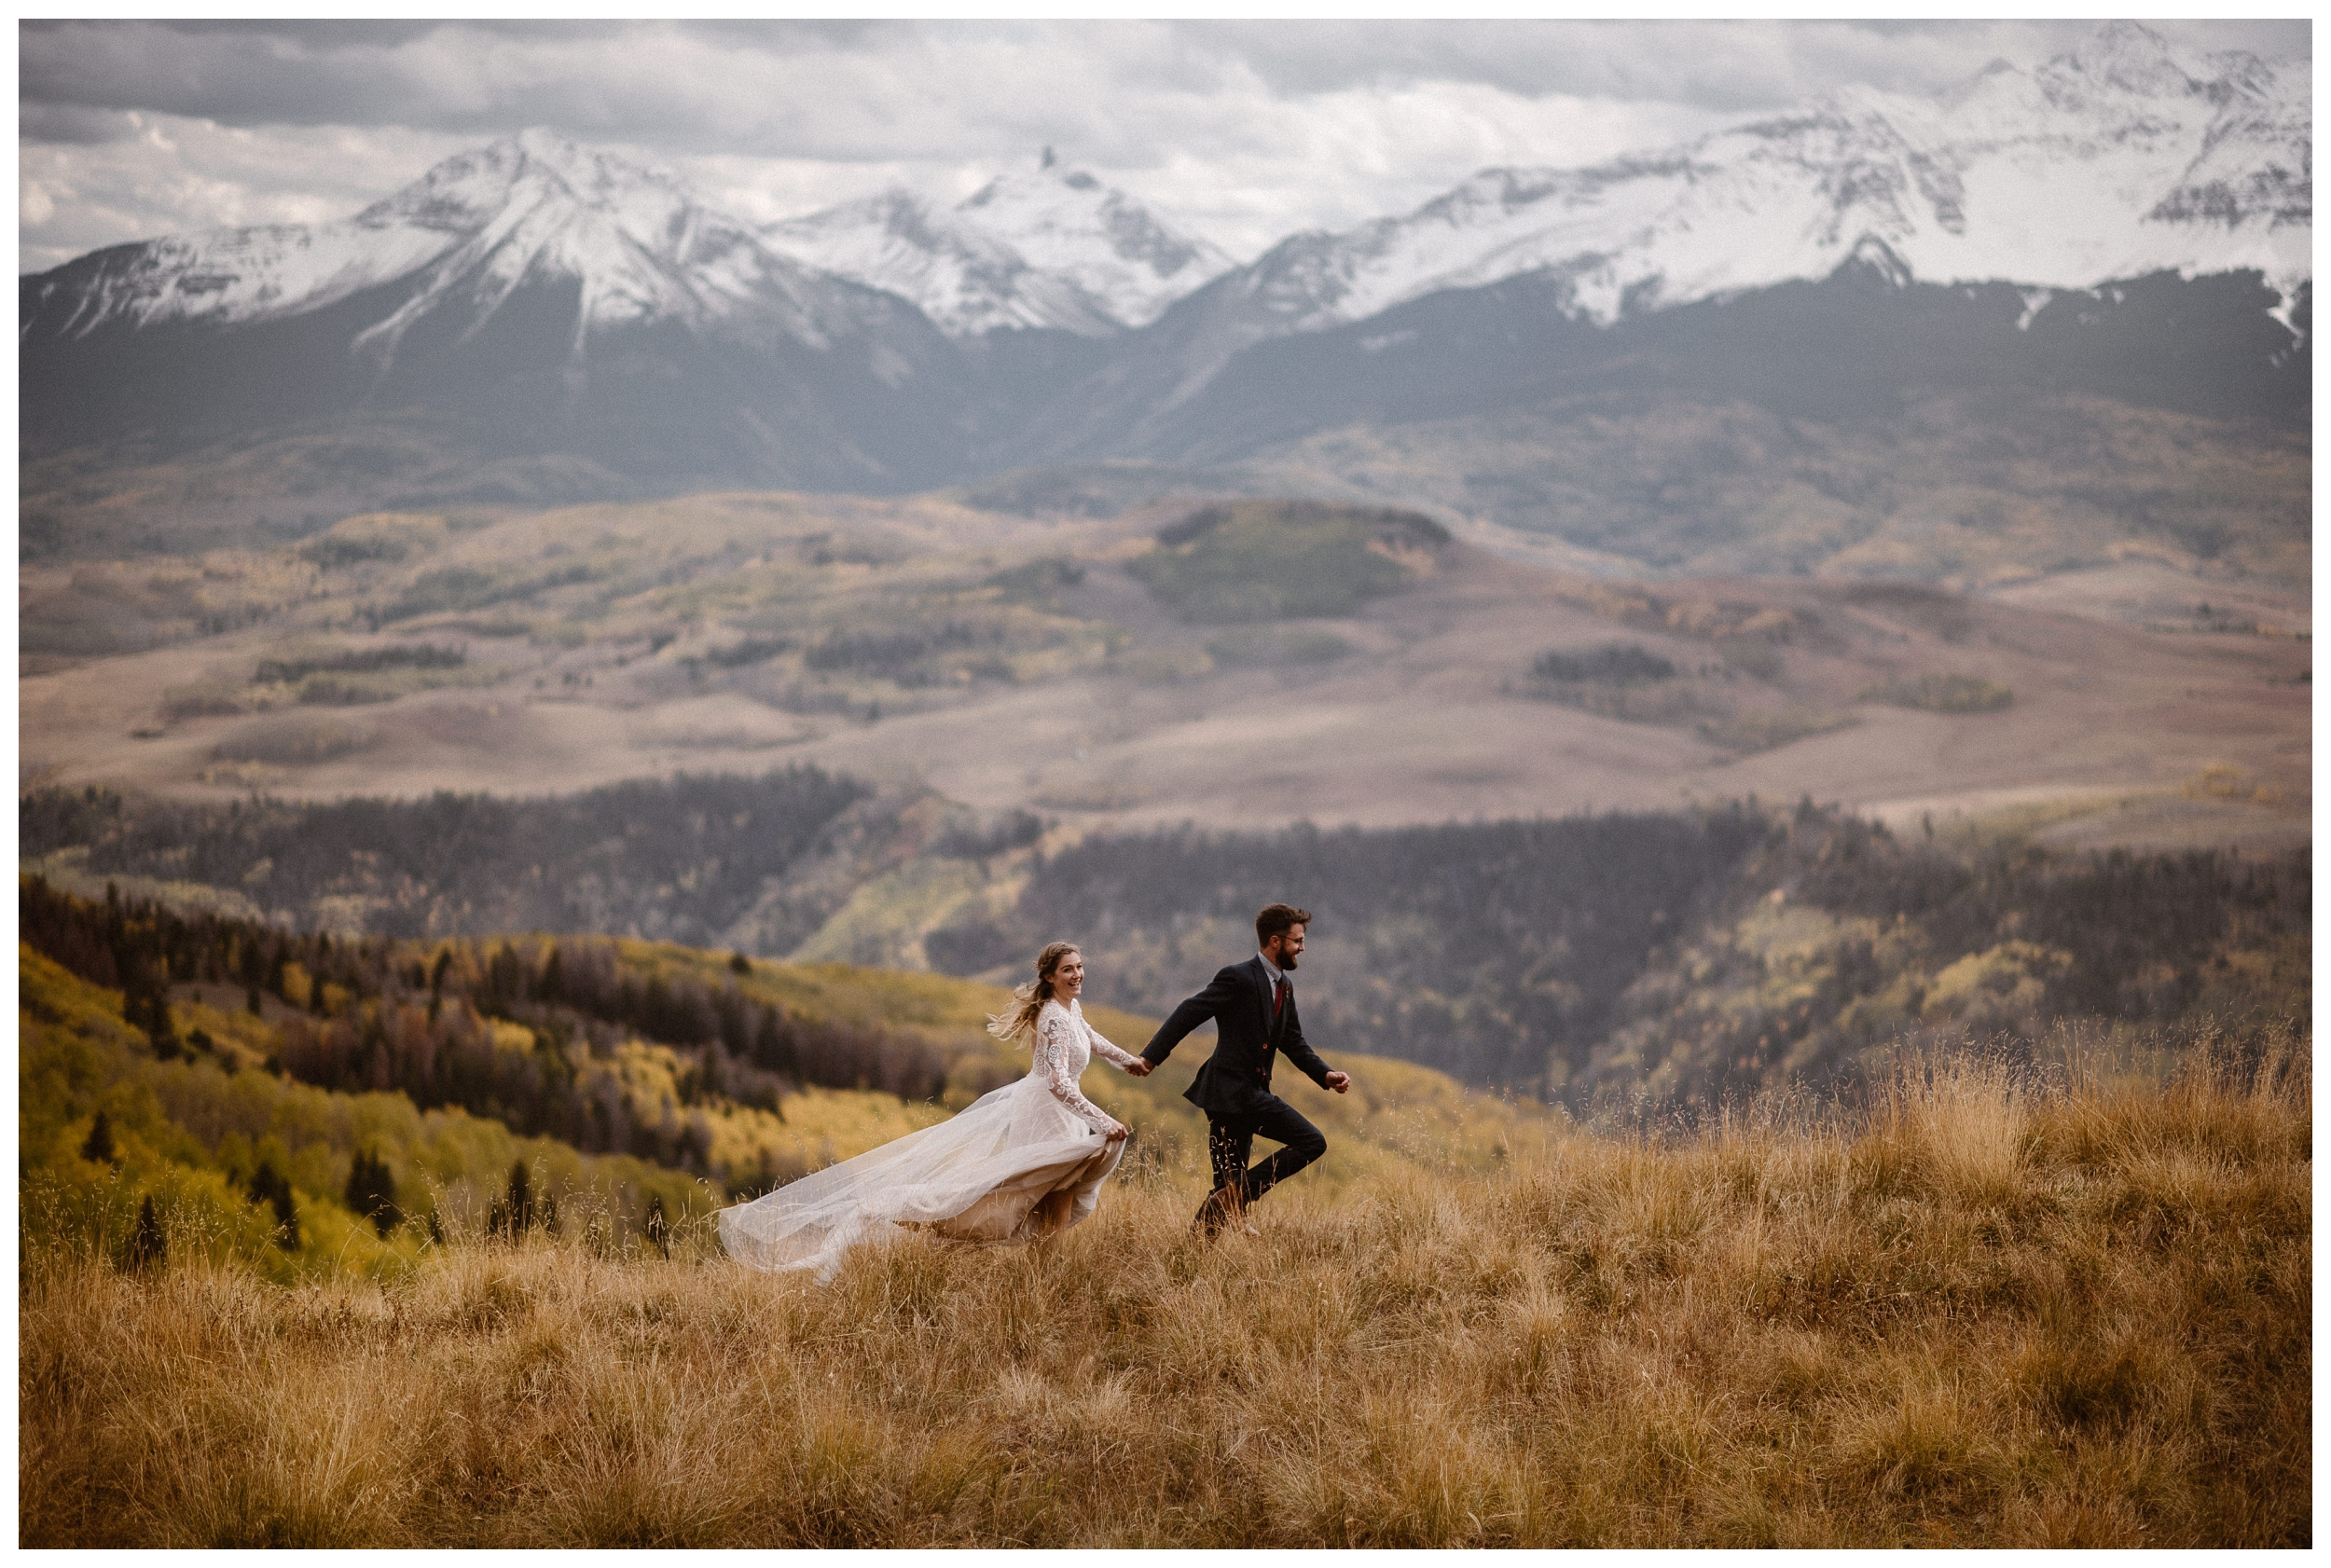 Rangefinder-Top-Wedding-Photographers-Adventure-Instead-Maddie-Mae-Destination-Elopement-Photography-Eloping-Photographers_0020.jpg